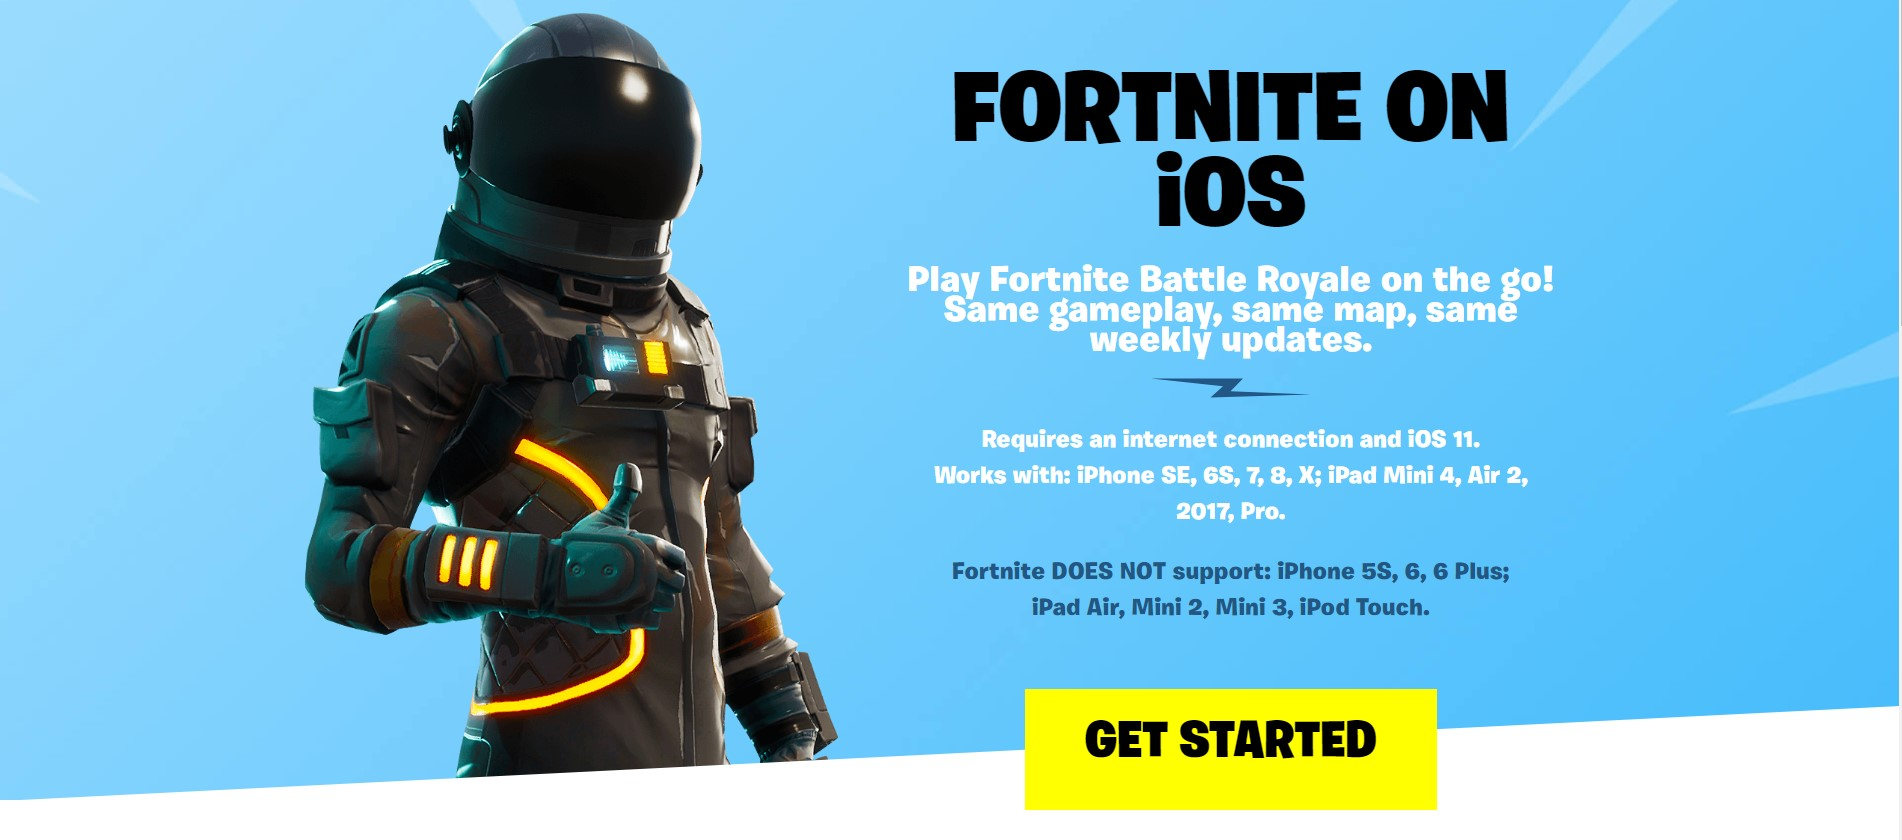 Sumber: Fortnite Official Site